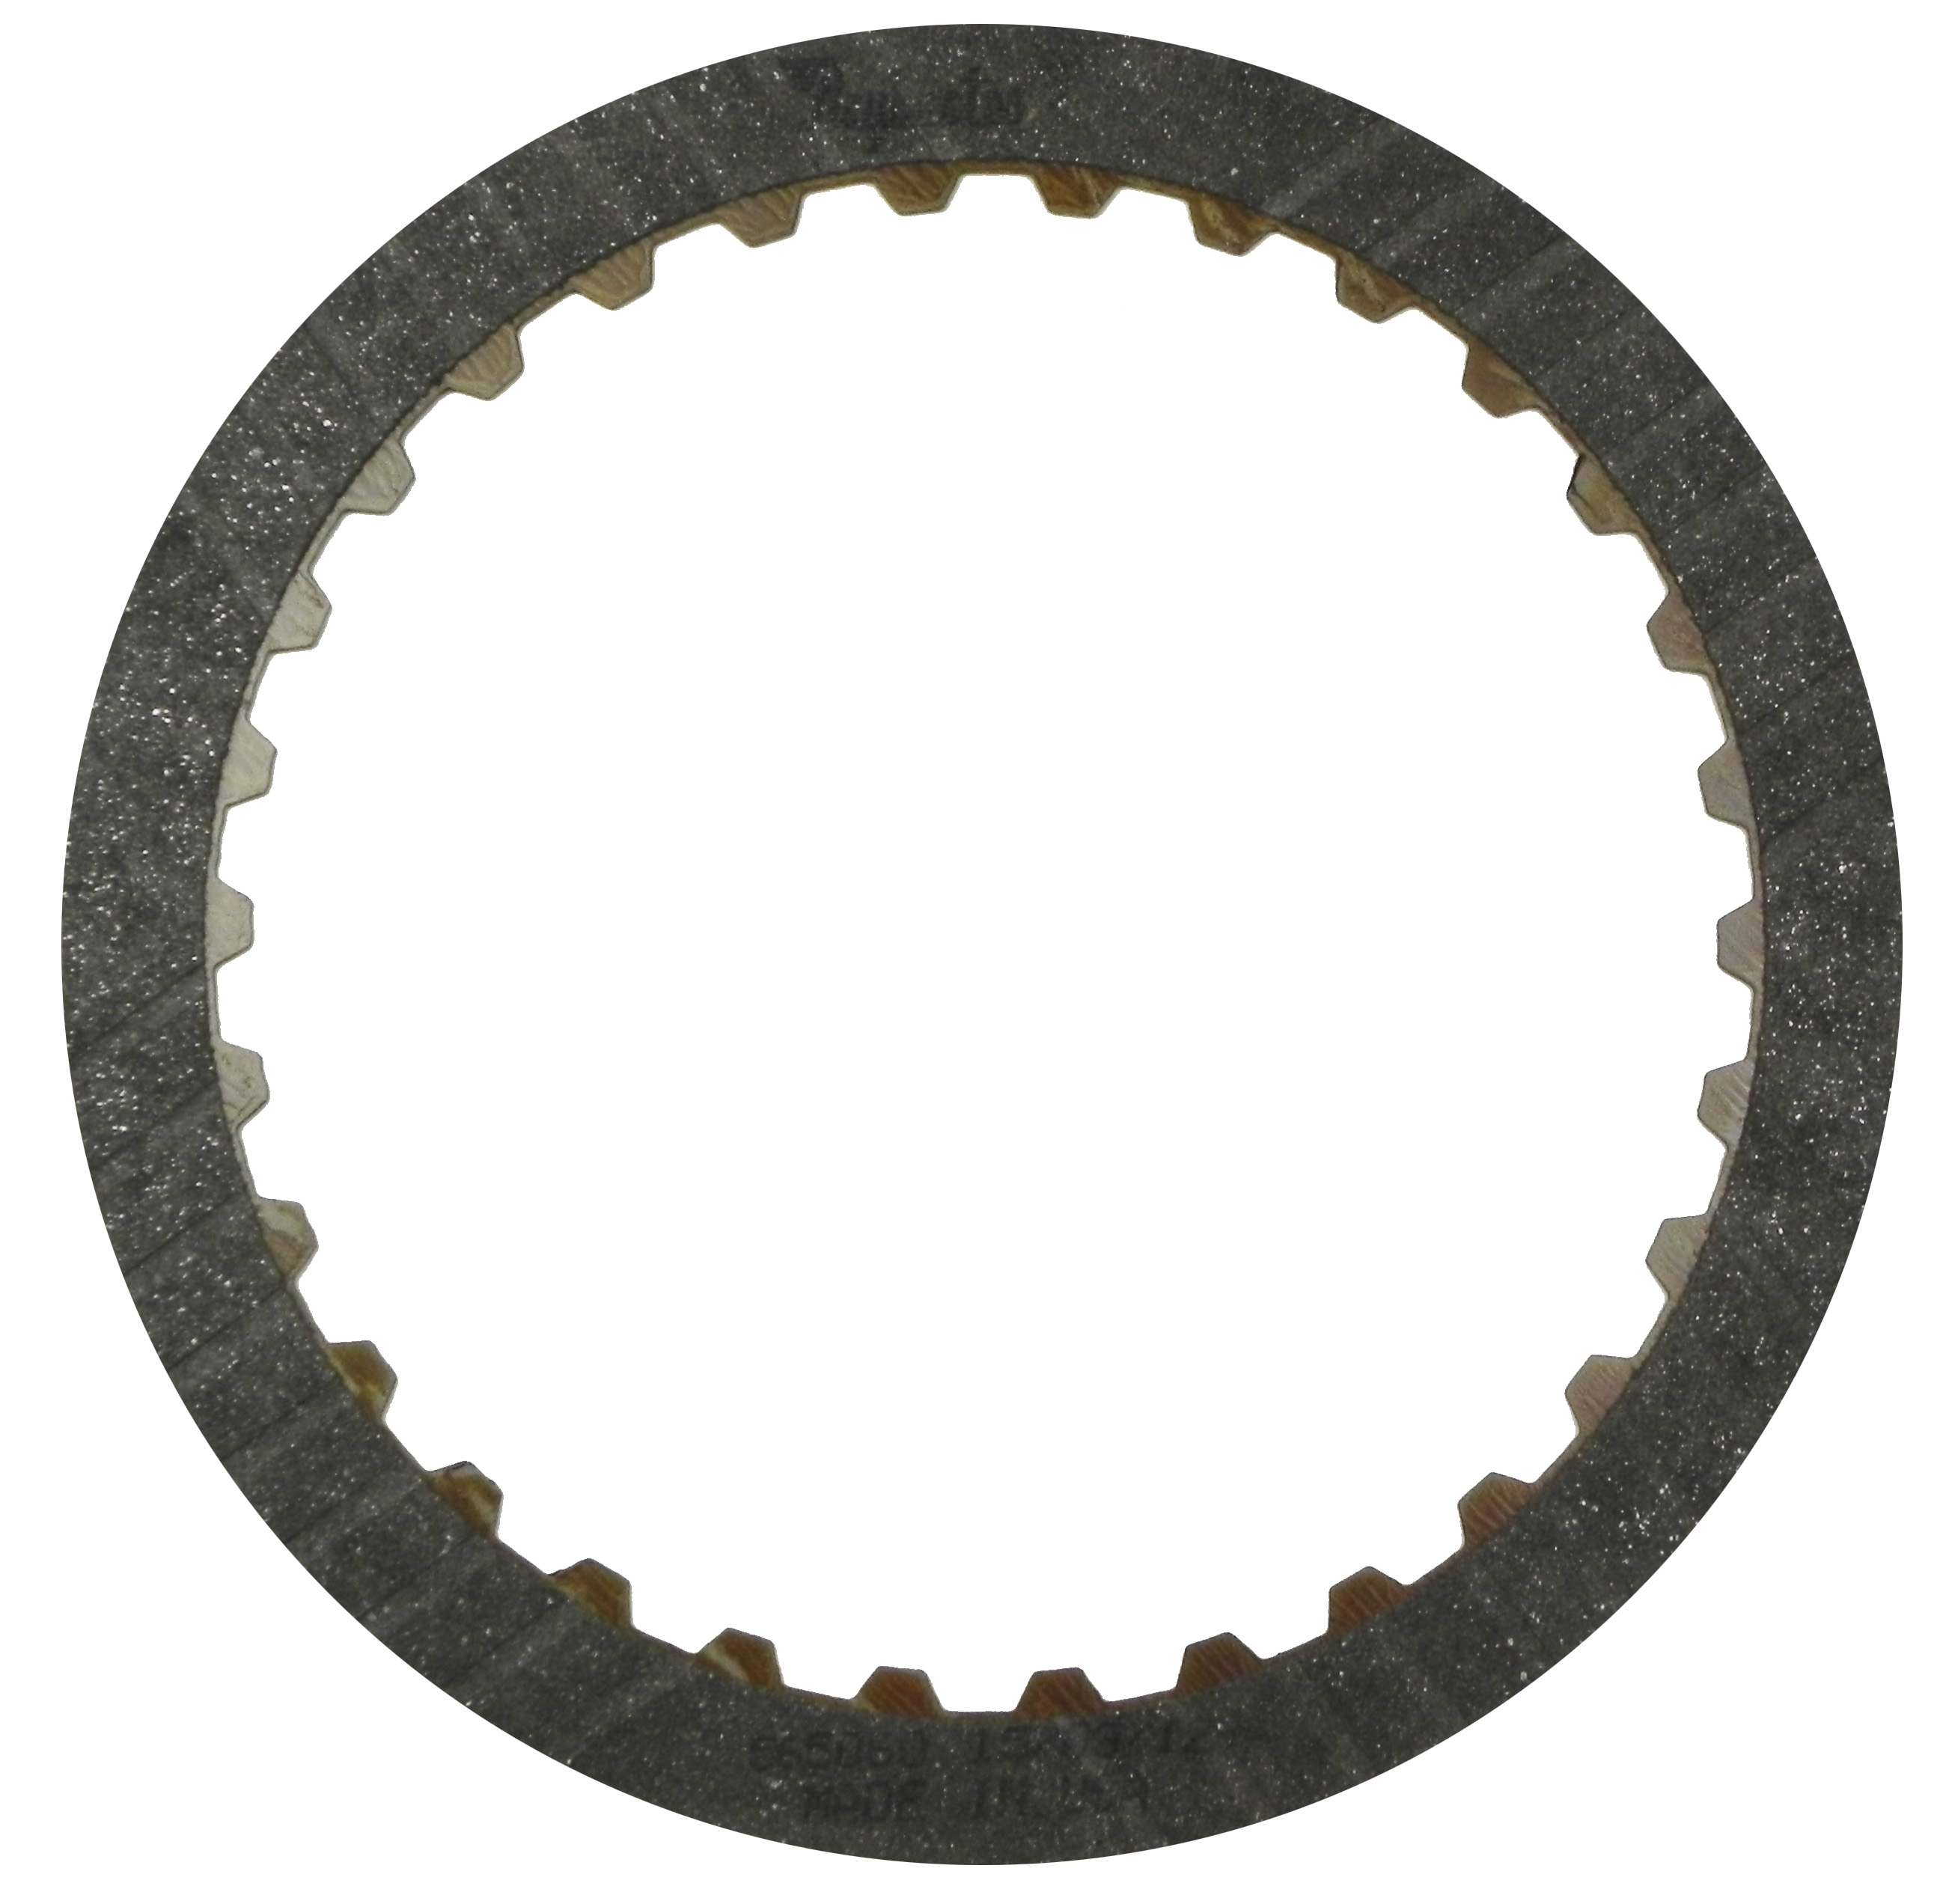 R565060 | 2006-2008 Friction Clutch Plate High Energy Underdrive Clutch Waved High Energy